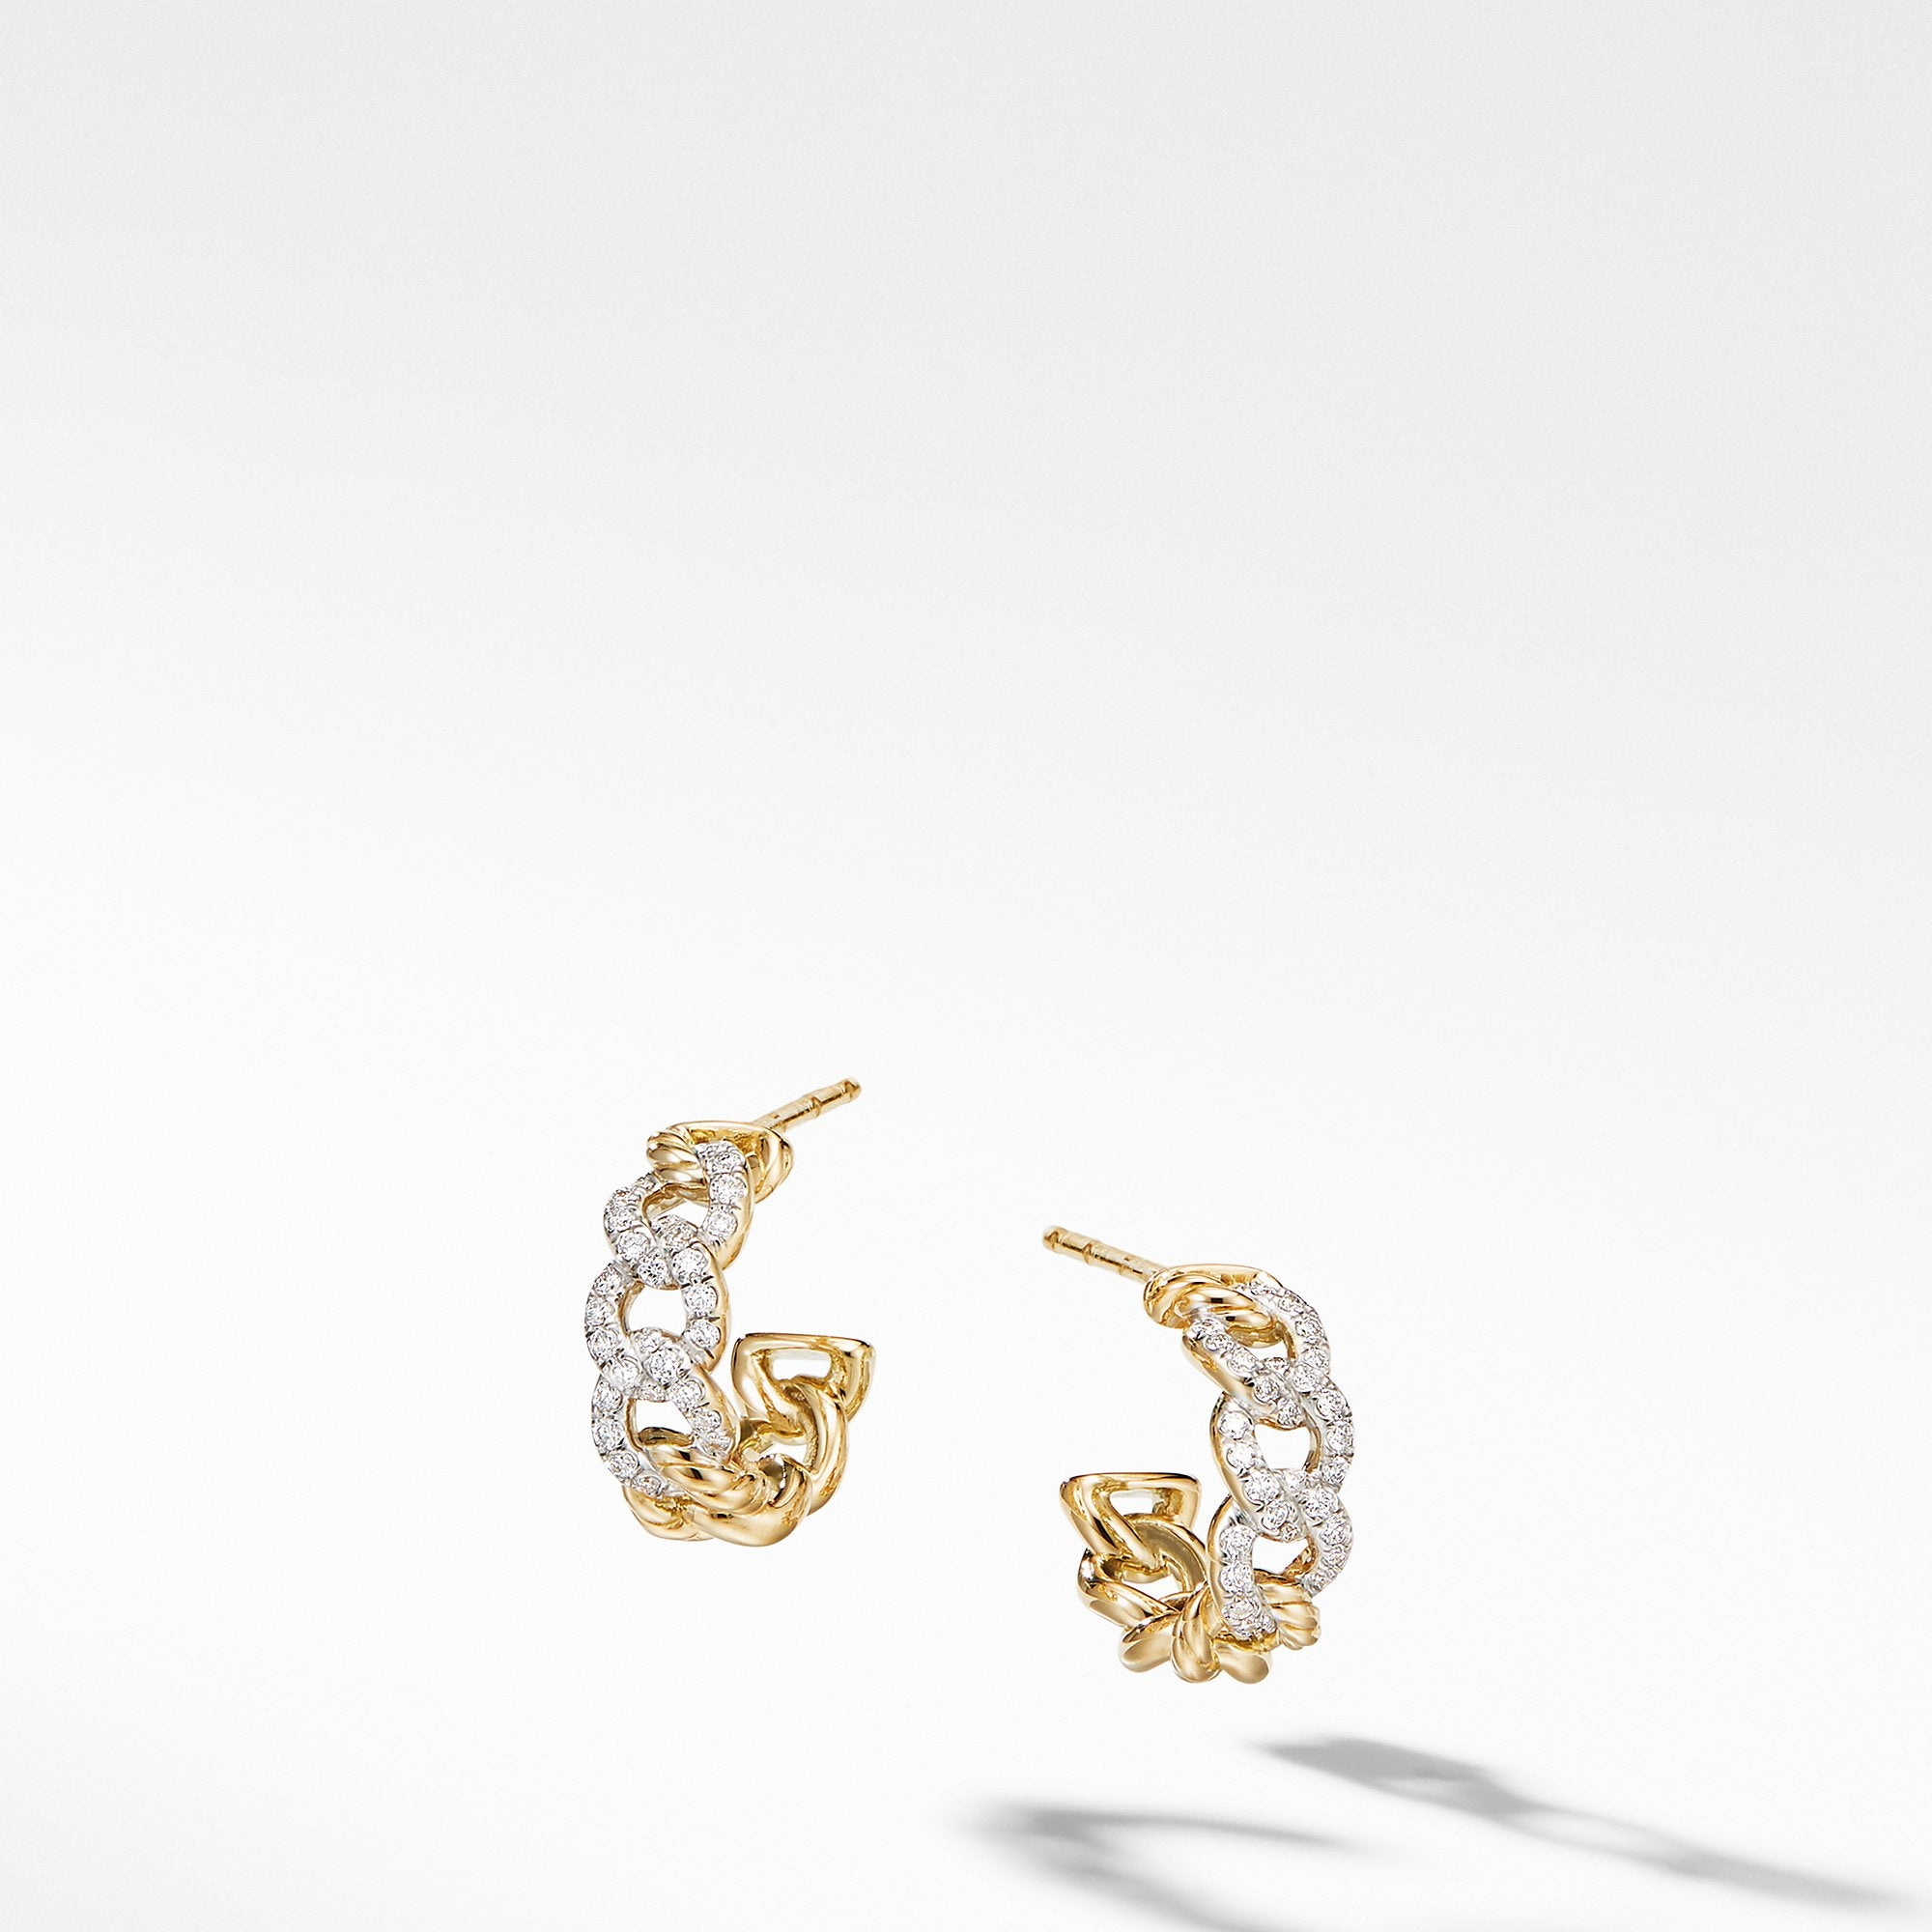 Belmont Curb Link Small Hoop Earrings in 18K Yellow Gold with Pavé Diamonds